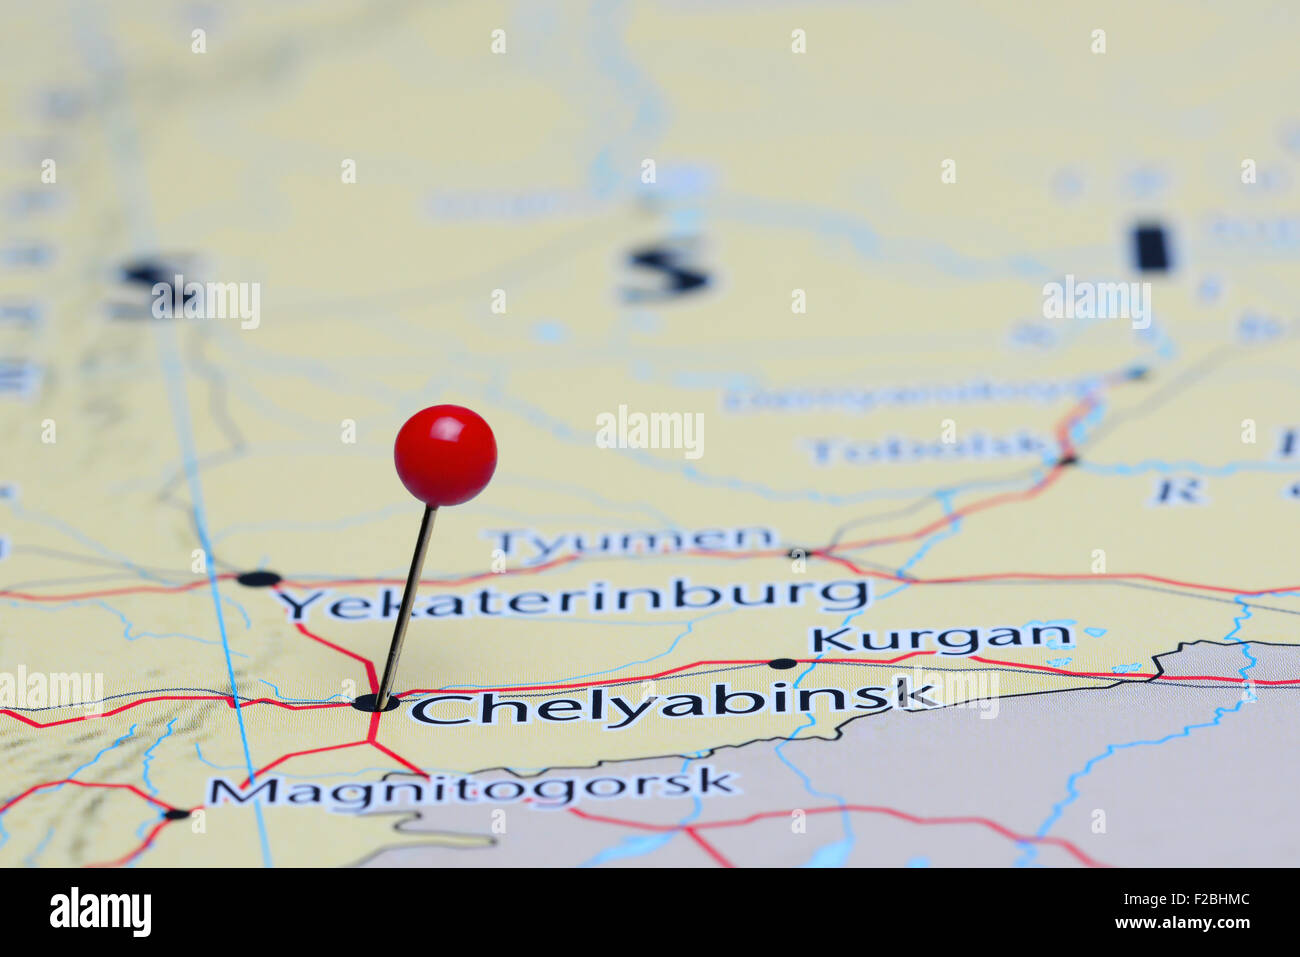 Chelyabinsk pinned on a map of Asia Stock Photo Royalty Free Image